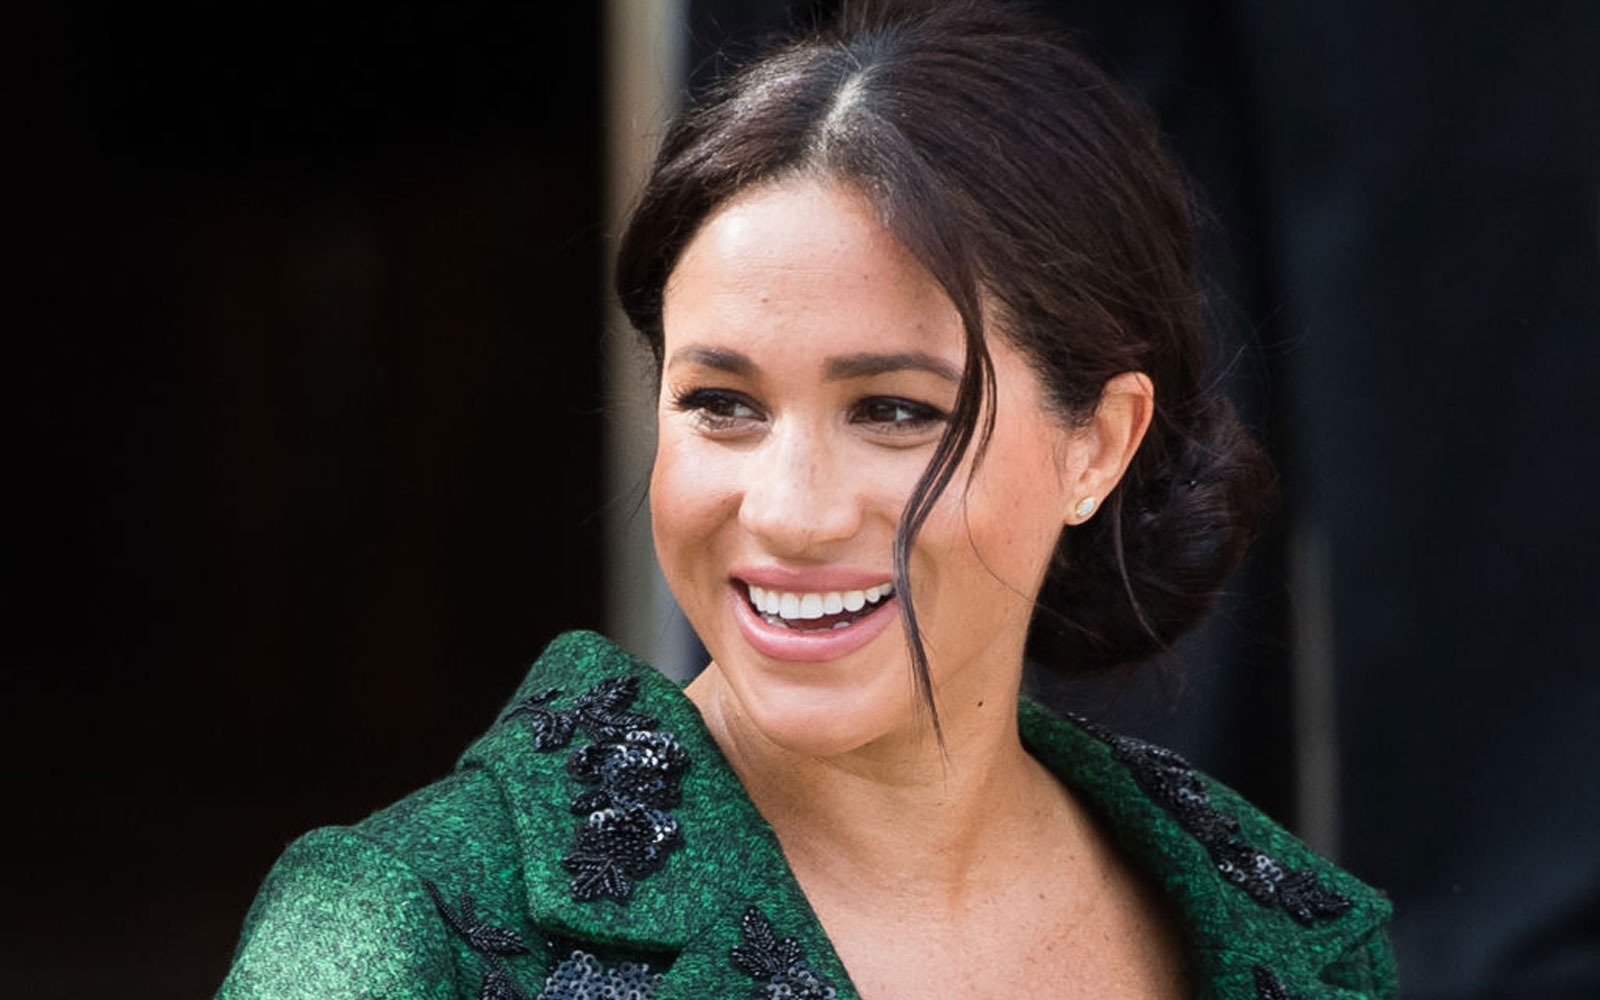 Meghan Markle Is Reportedly Writing a Children's Book Inspired by Her Dogs